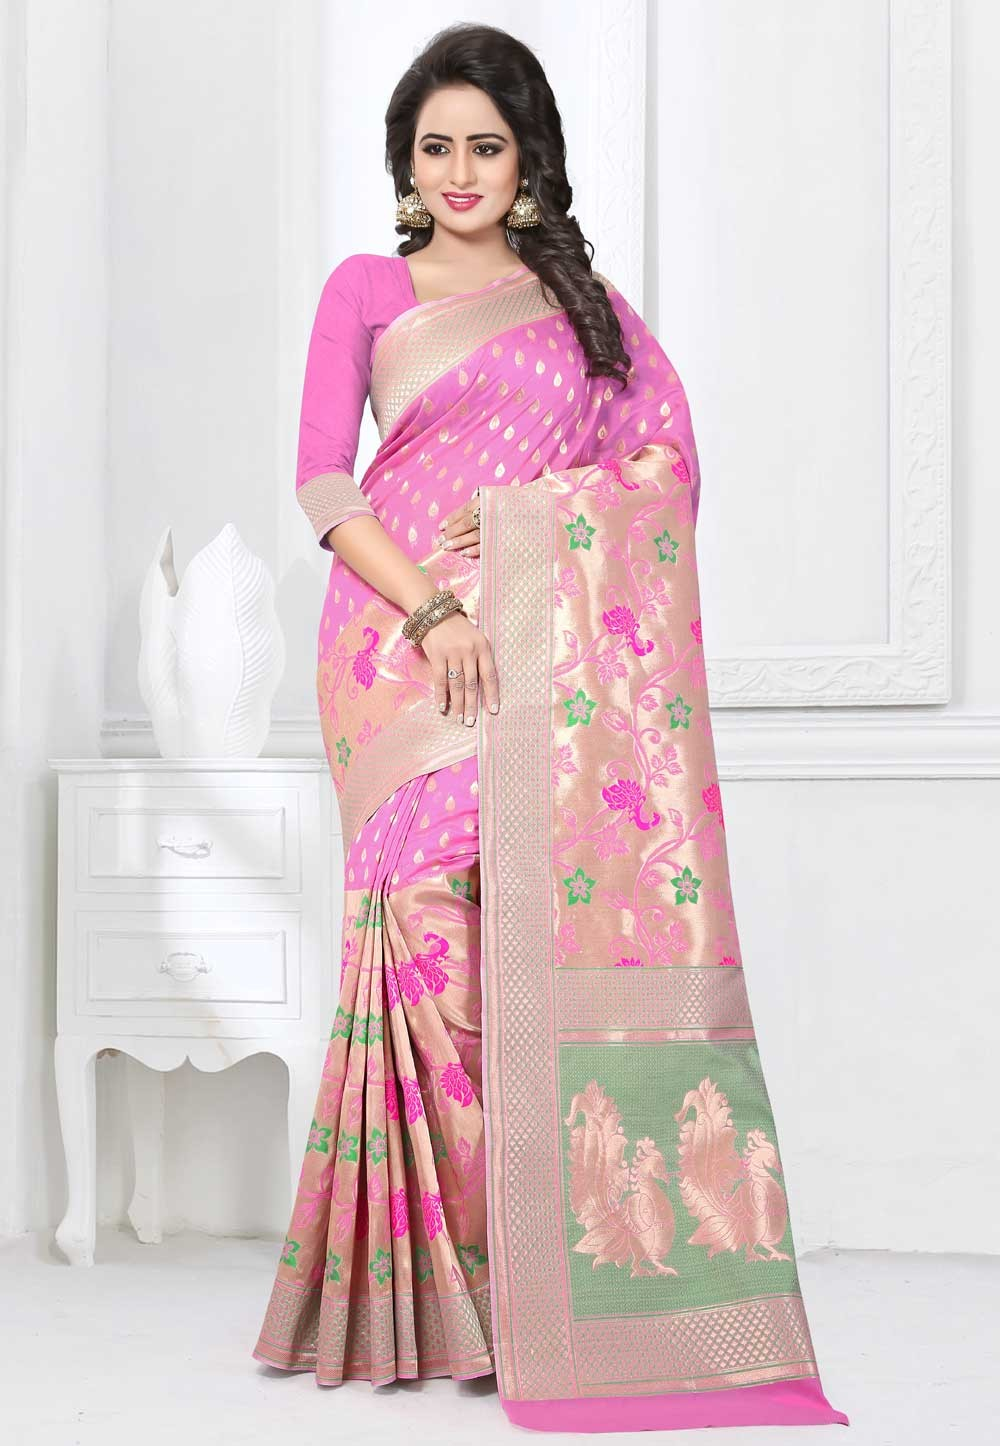 Attractive Looking Light Pink Color Ethnic Saree Womens